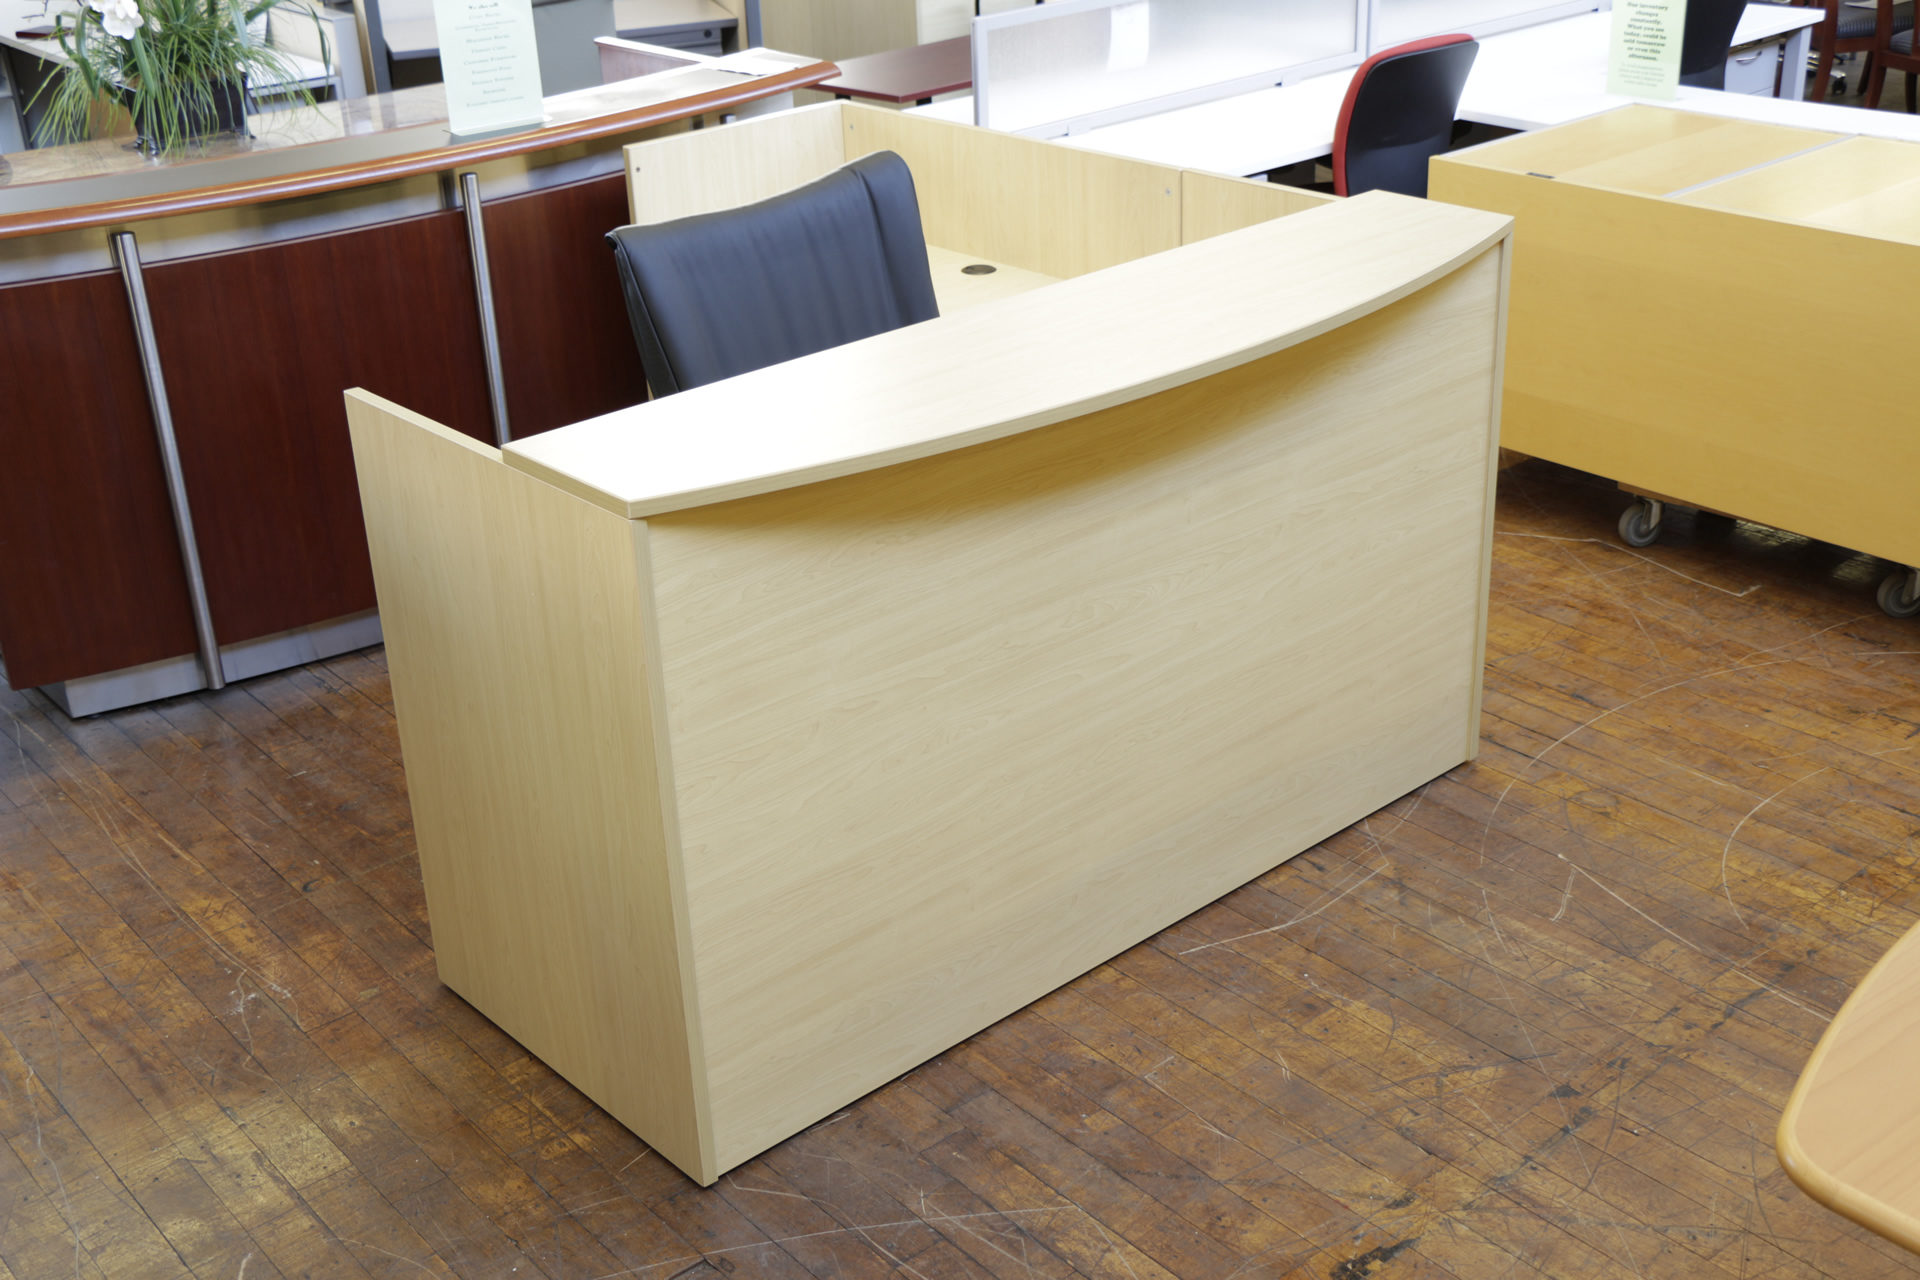 New Warren Series Maple Laminate Bowfront L-Shaped Reception Desks